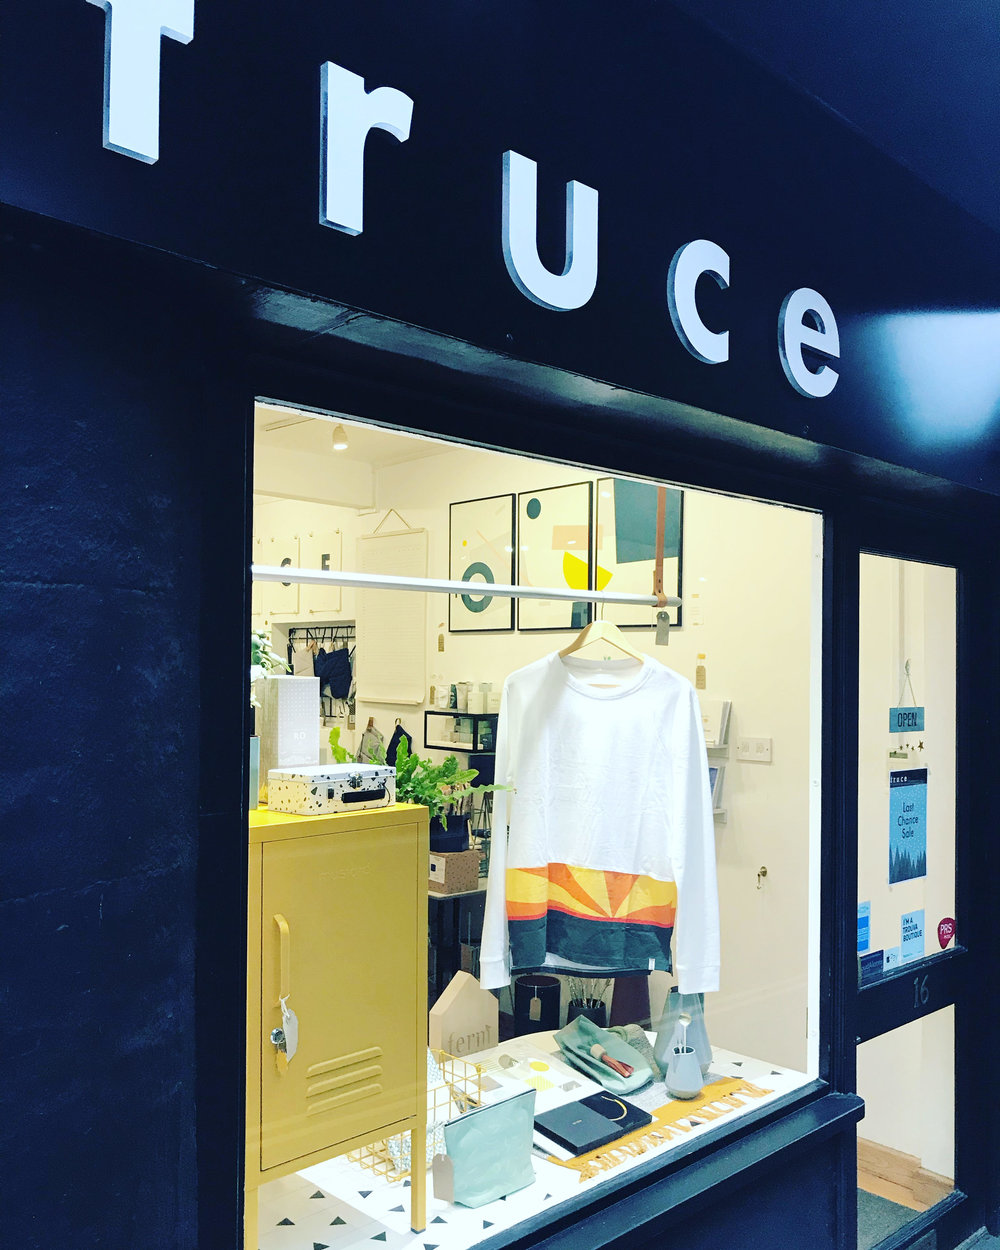 Find my work at Truce - Or shop online -truceonline.co.uk